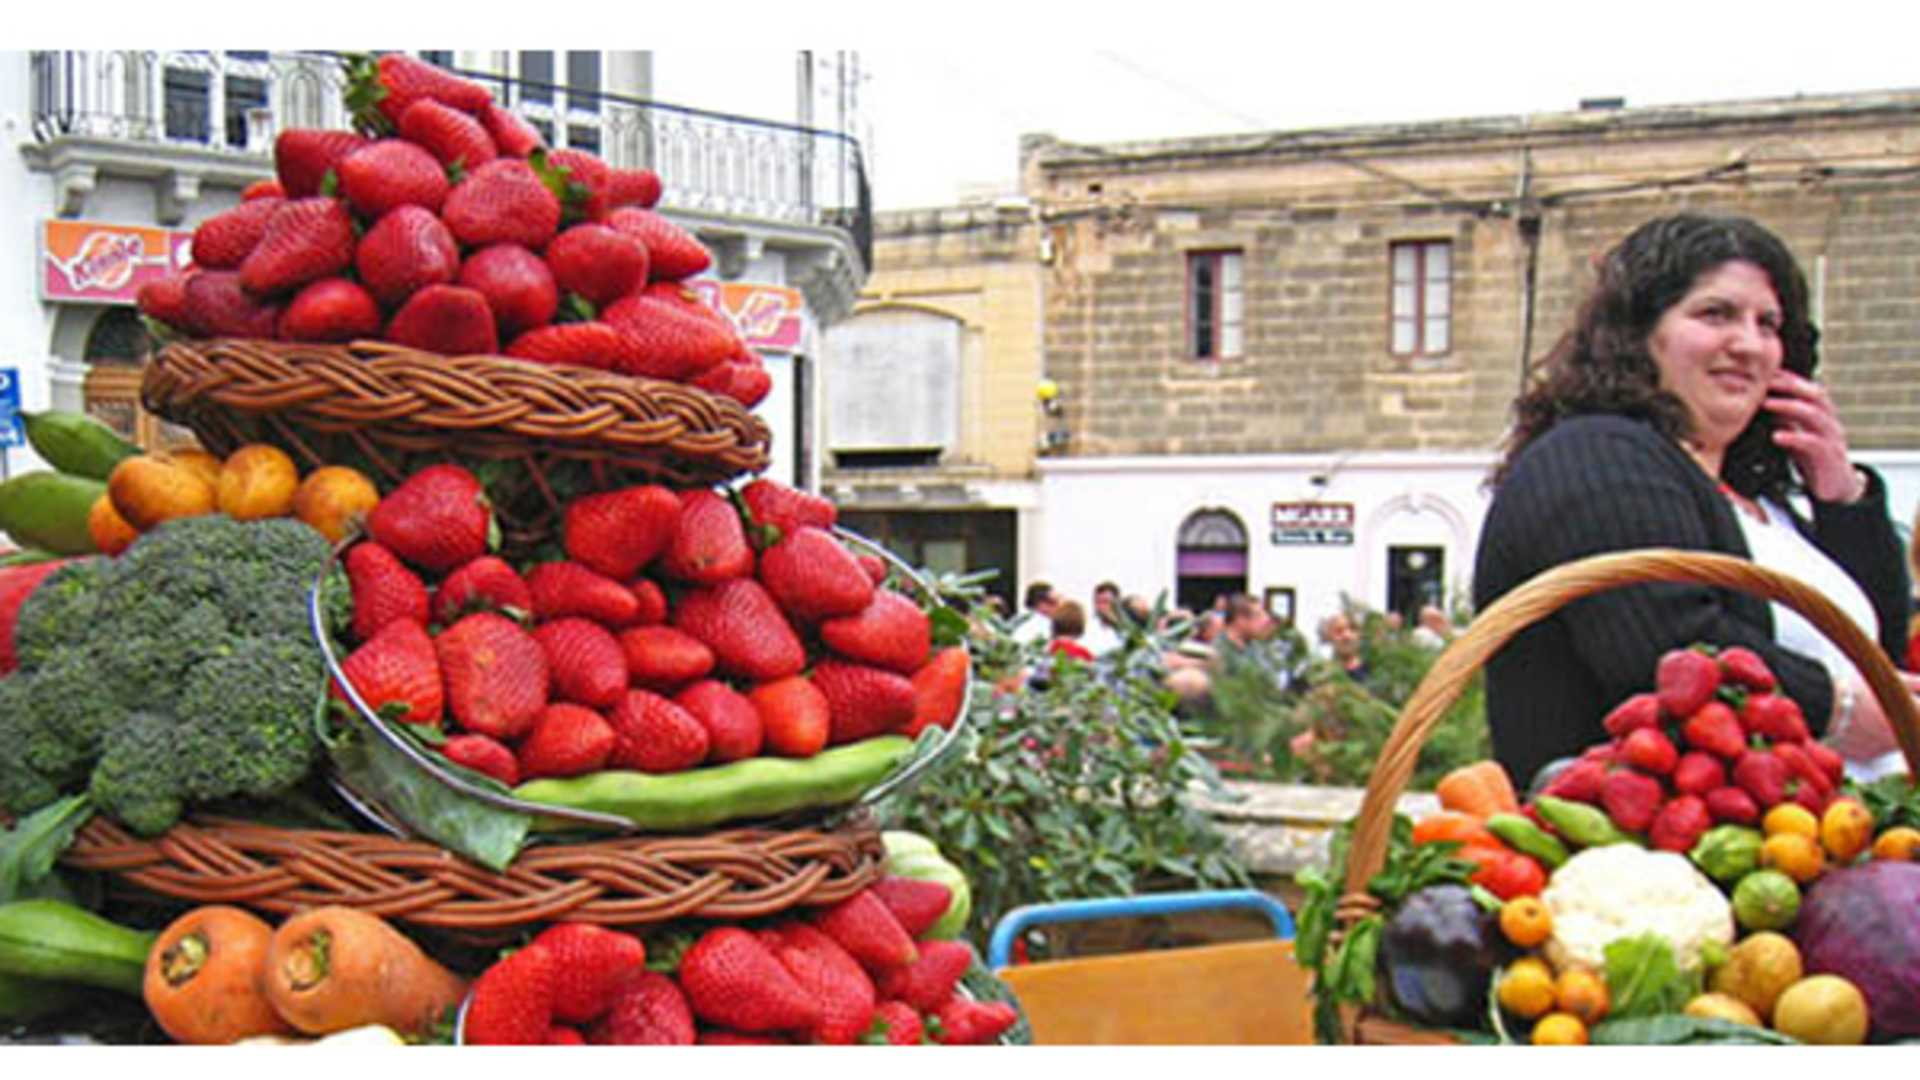 *April* - Mġarr Strawberry Fair